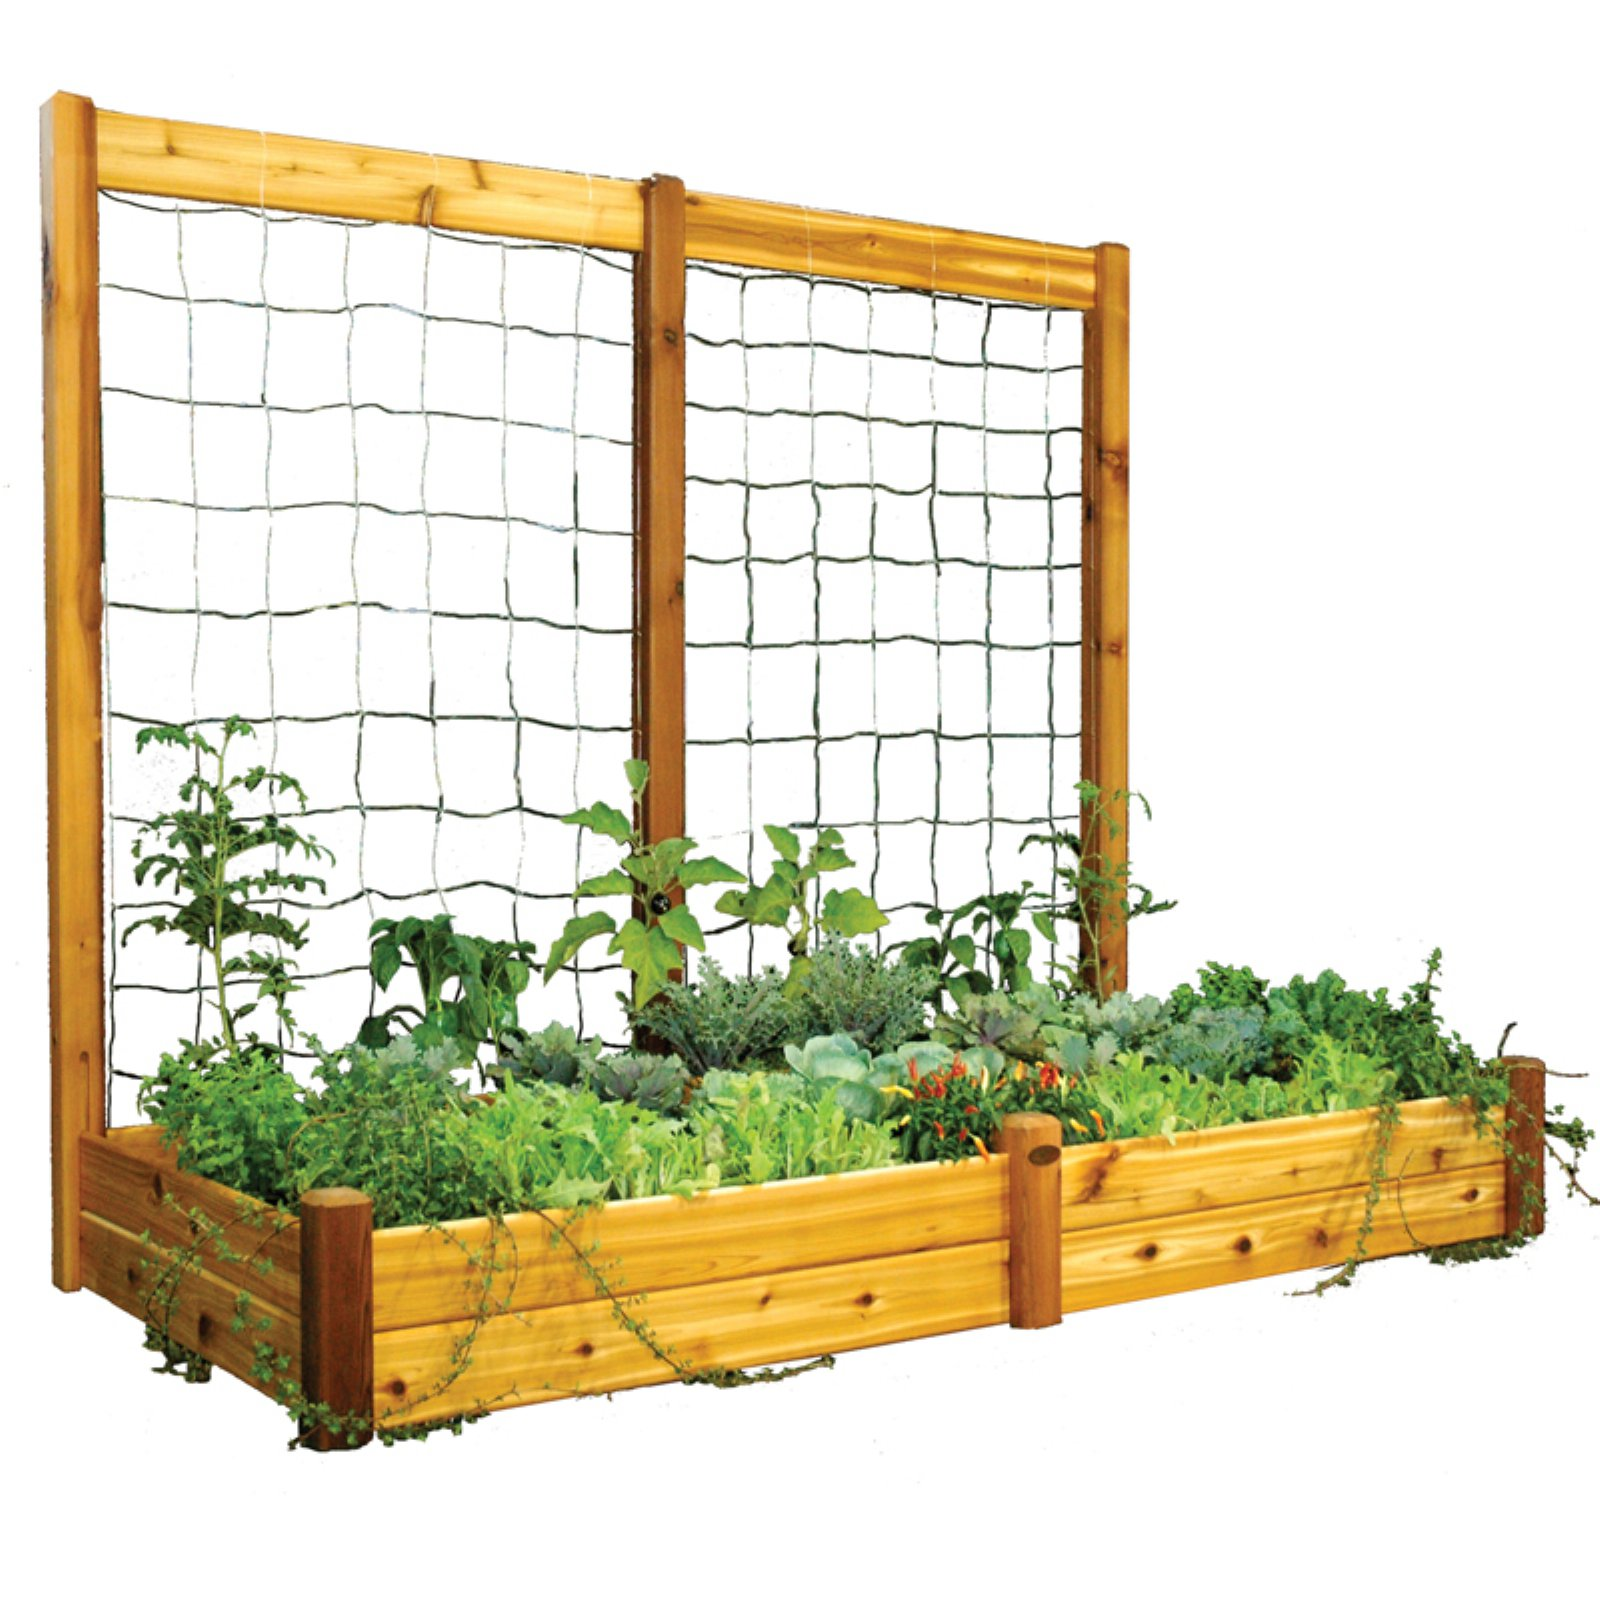 Gronomics 48L x 95W x 13H in. in. Raised Garden Bed with Trellis Kit